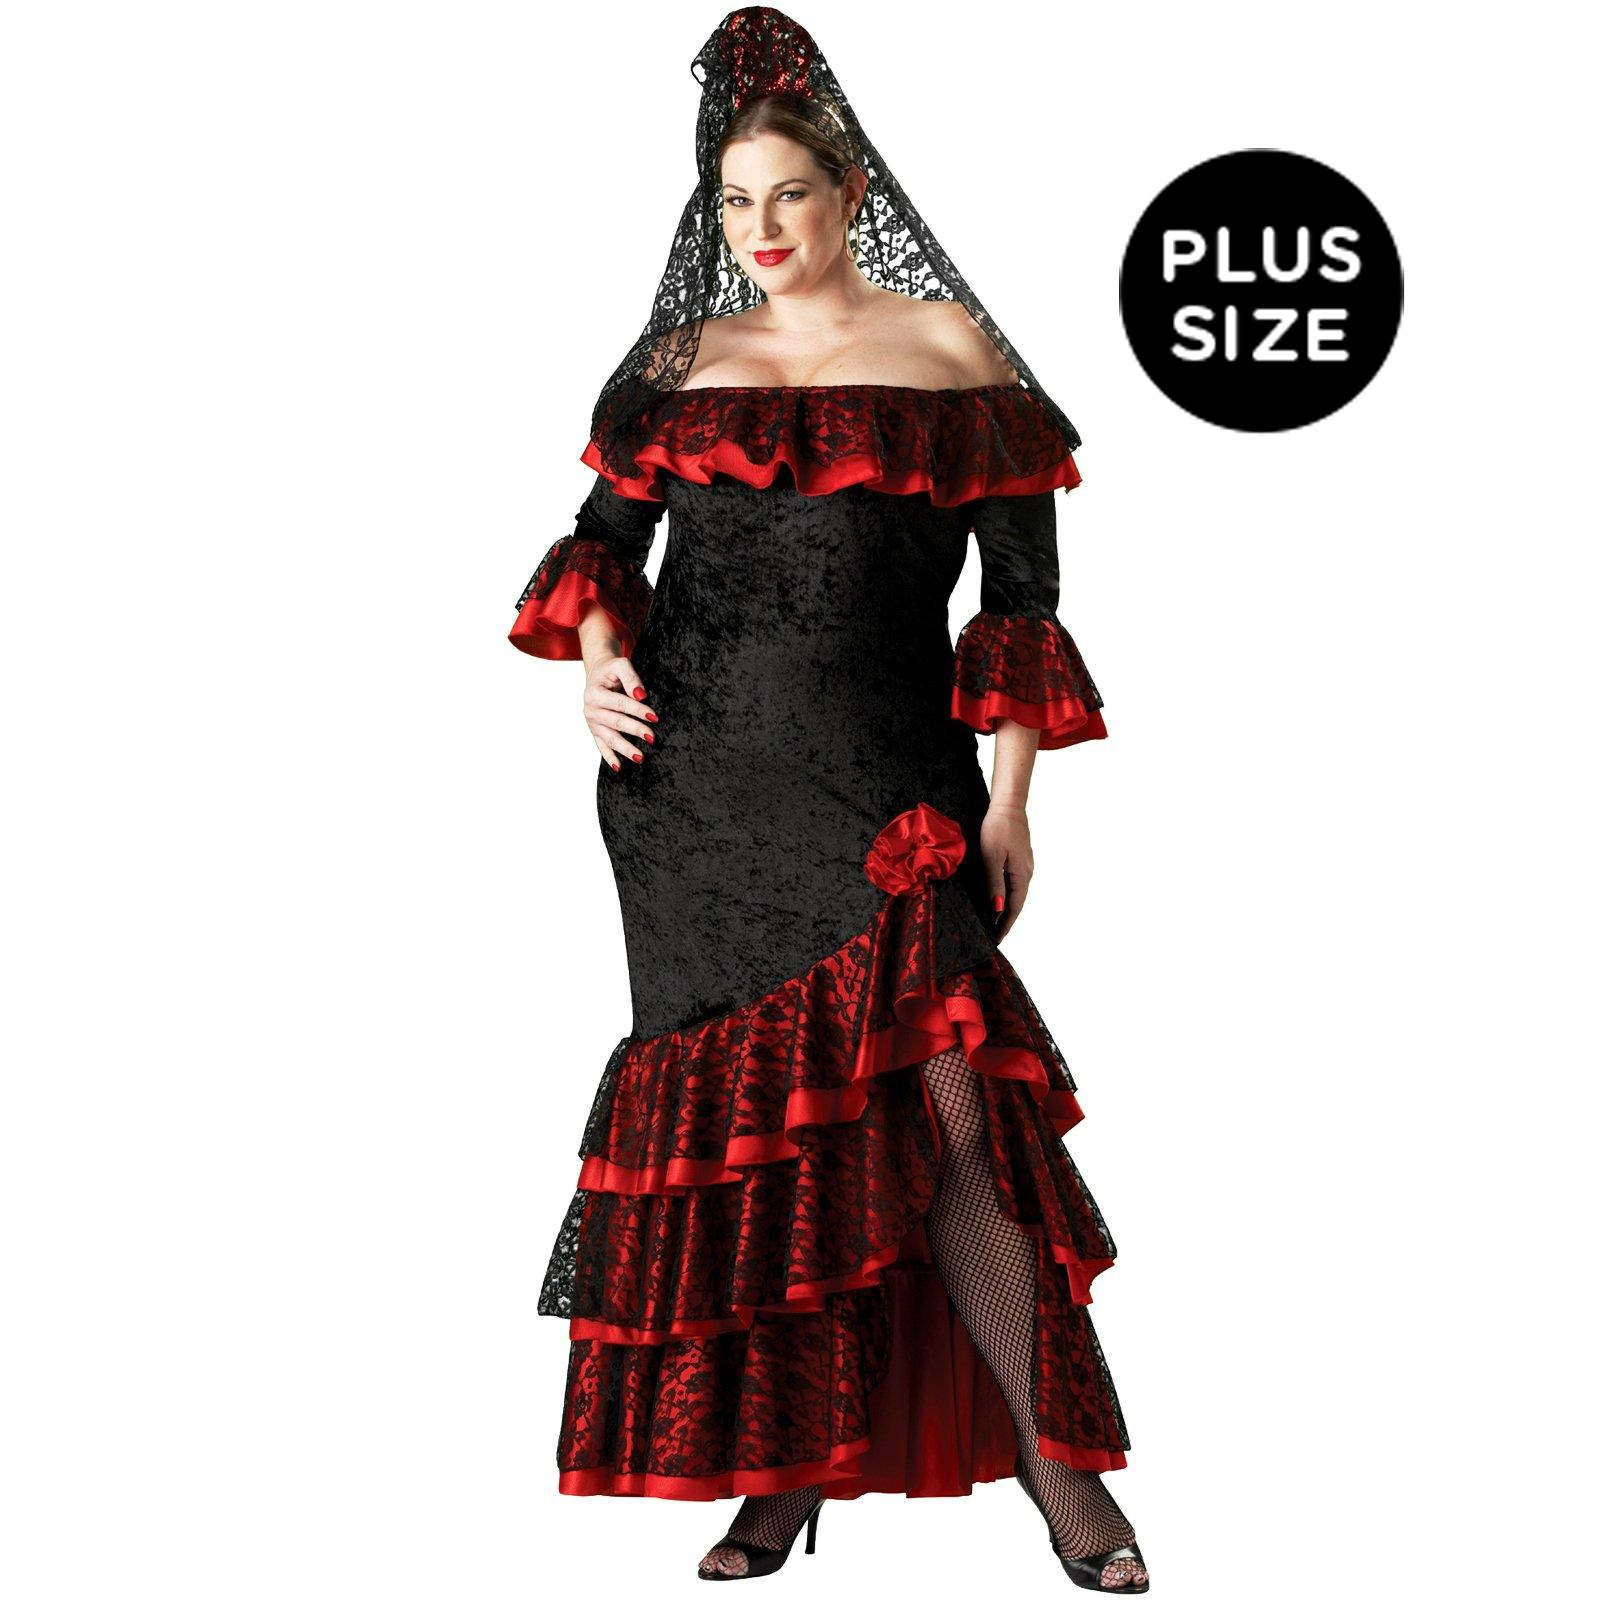 Image of Senorita Elite Collection Adult Plus Costume